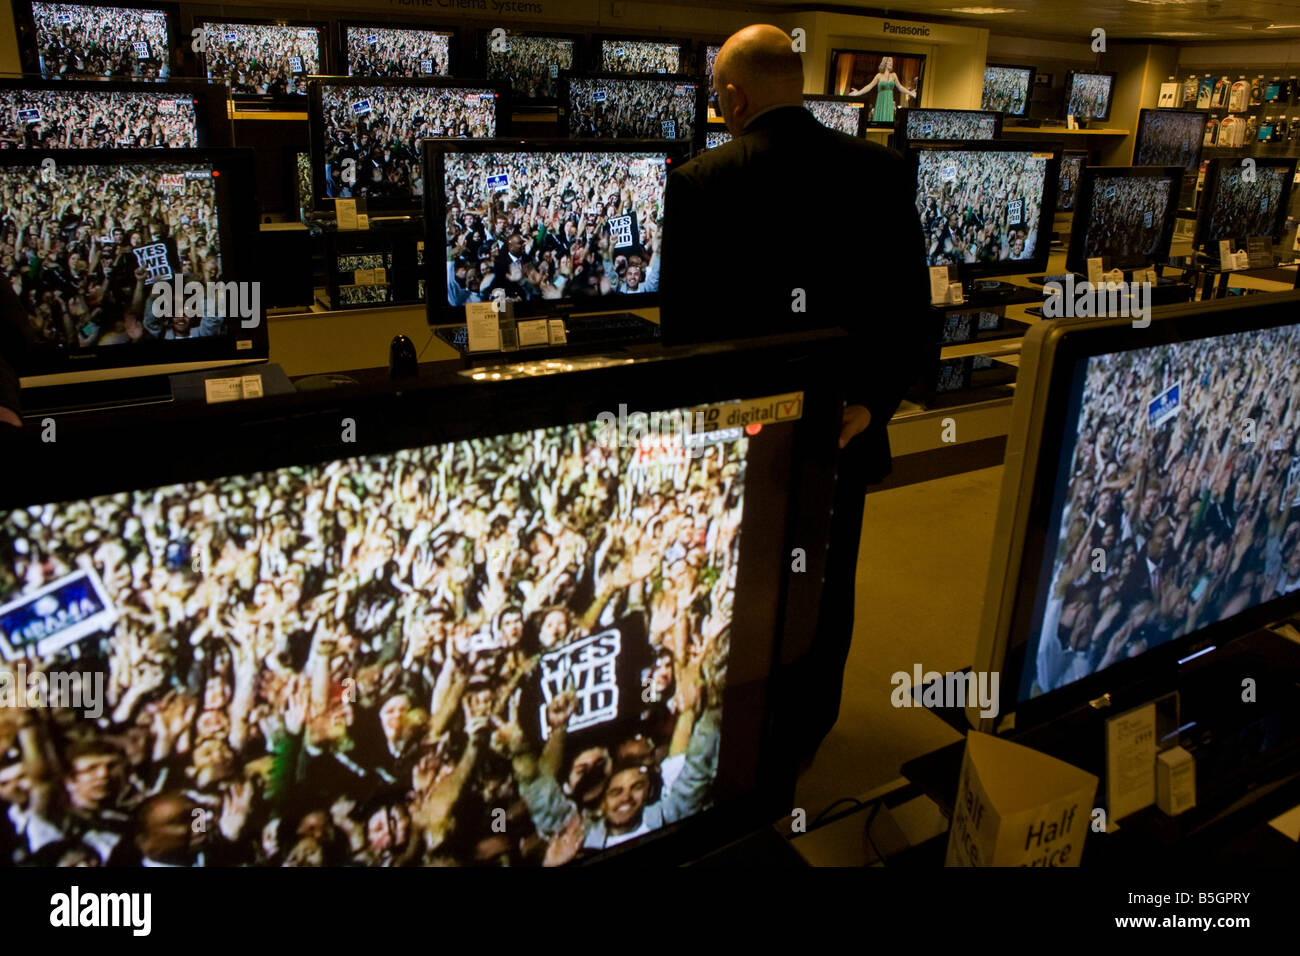 Shopper watches Barack Obama Democrat supporters stage rally seen on BBC News TV screens in John Lewis department - Stock Image